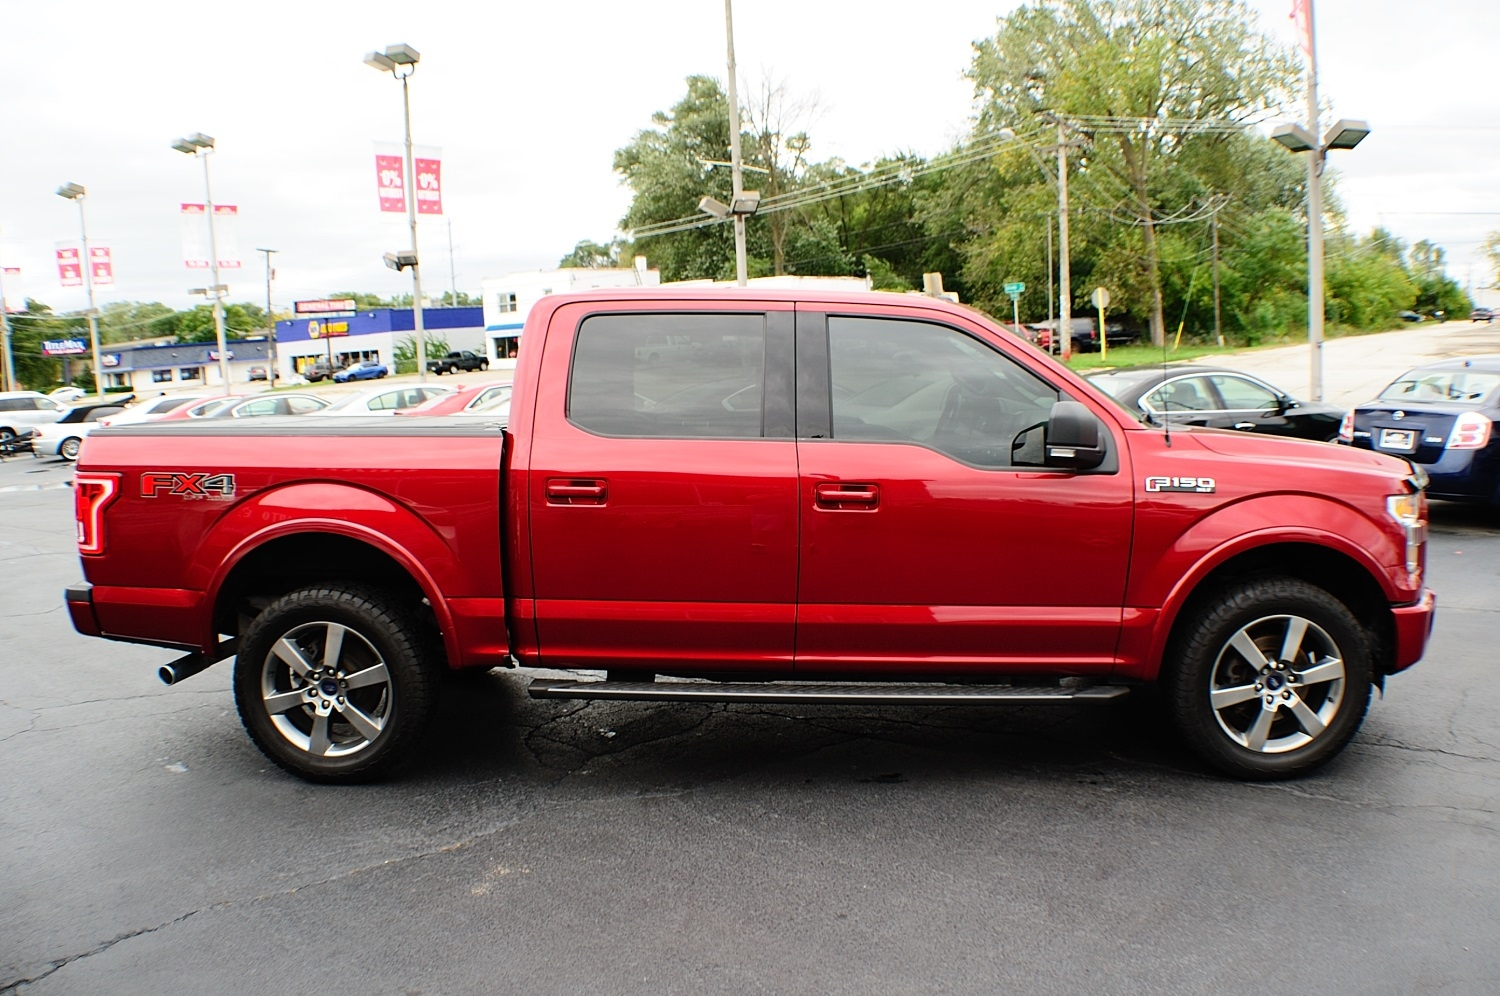 2015 Ford F150 XLT Red Used 4x4 Truck Sale Bannockburn Barrington Beach Park